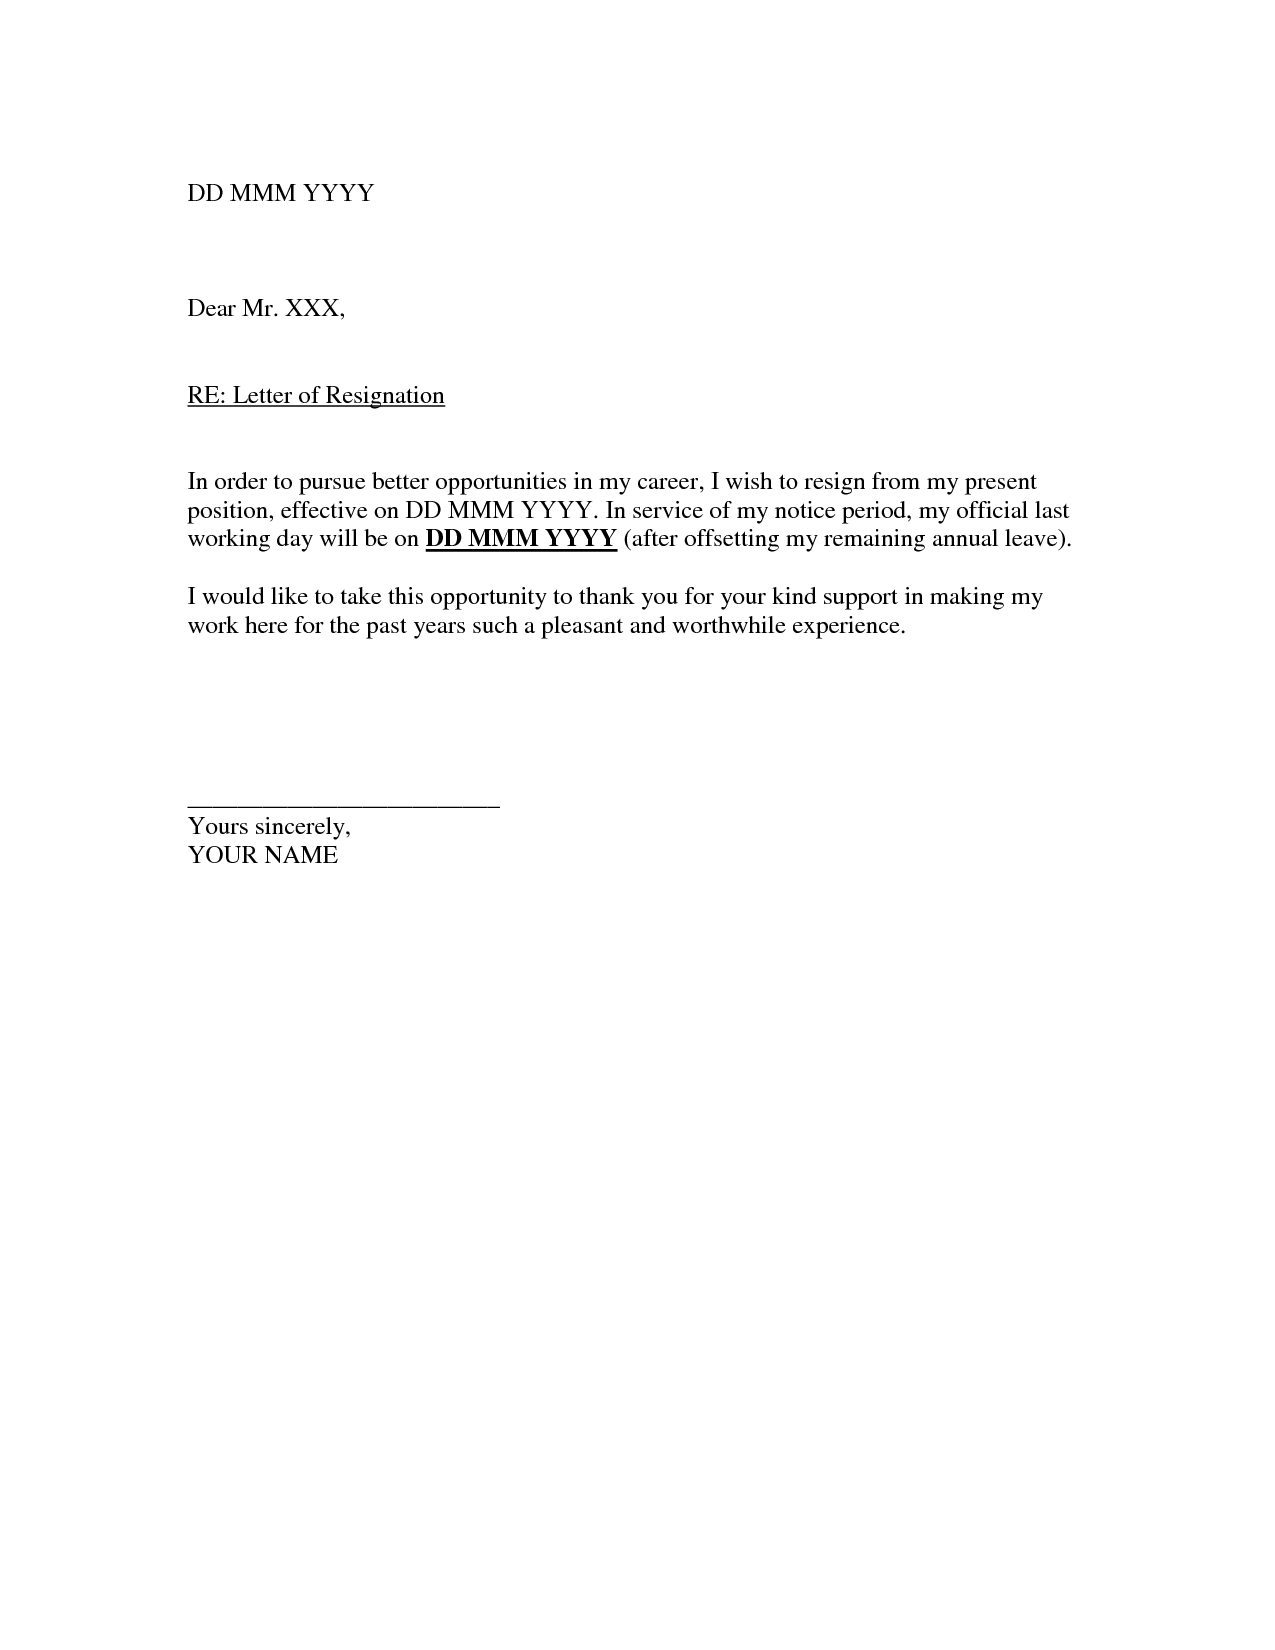 Job resignation template yolarnetonic job resignation template expocarfo